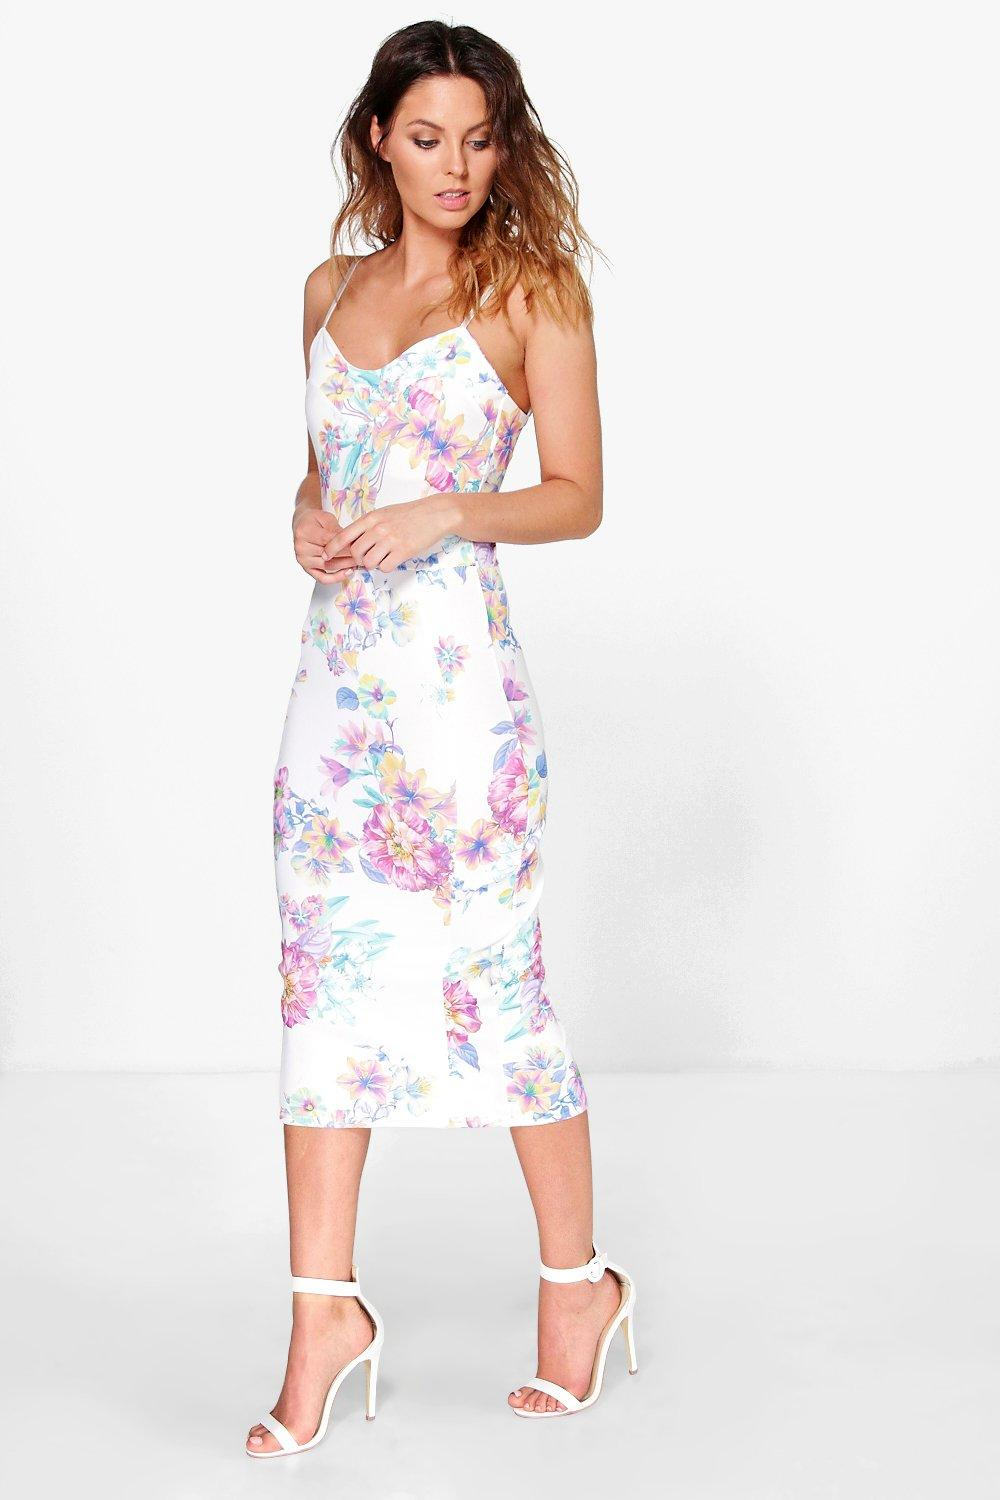 Cora Strappy Sweetheart Floral Midi Bodycon Dress